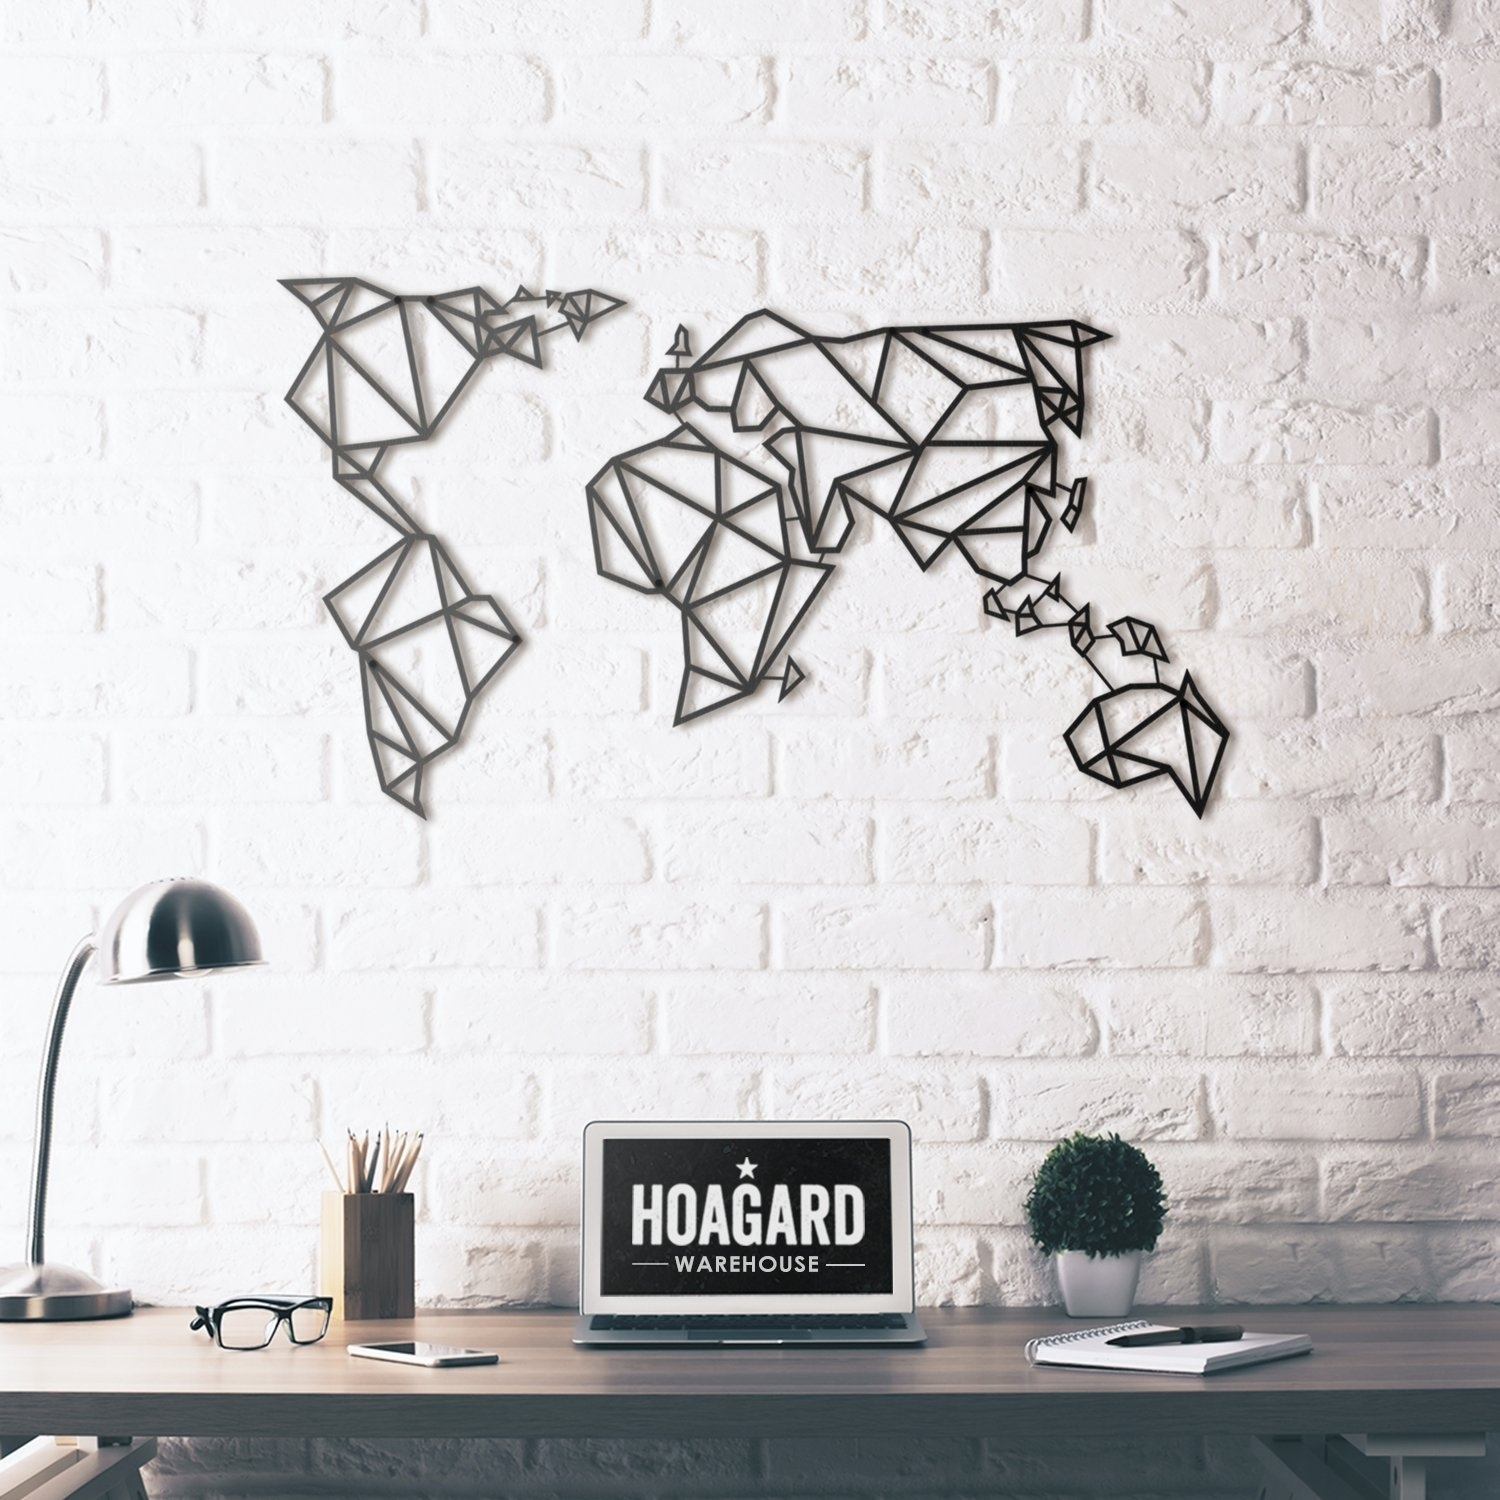 World Map Vinyl Wall Decal With Pins New | Astroinstitute Within Most Current Vinyl Wall Art World Map (Gallery 15 of 20)